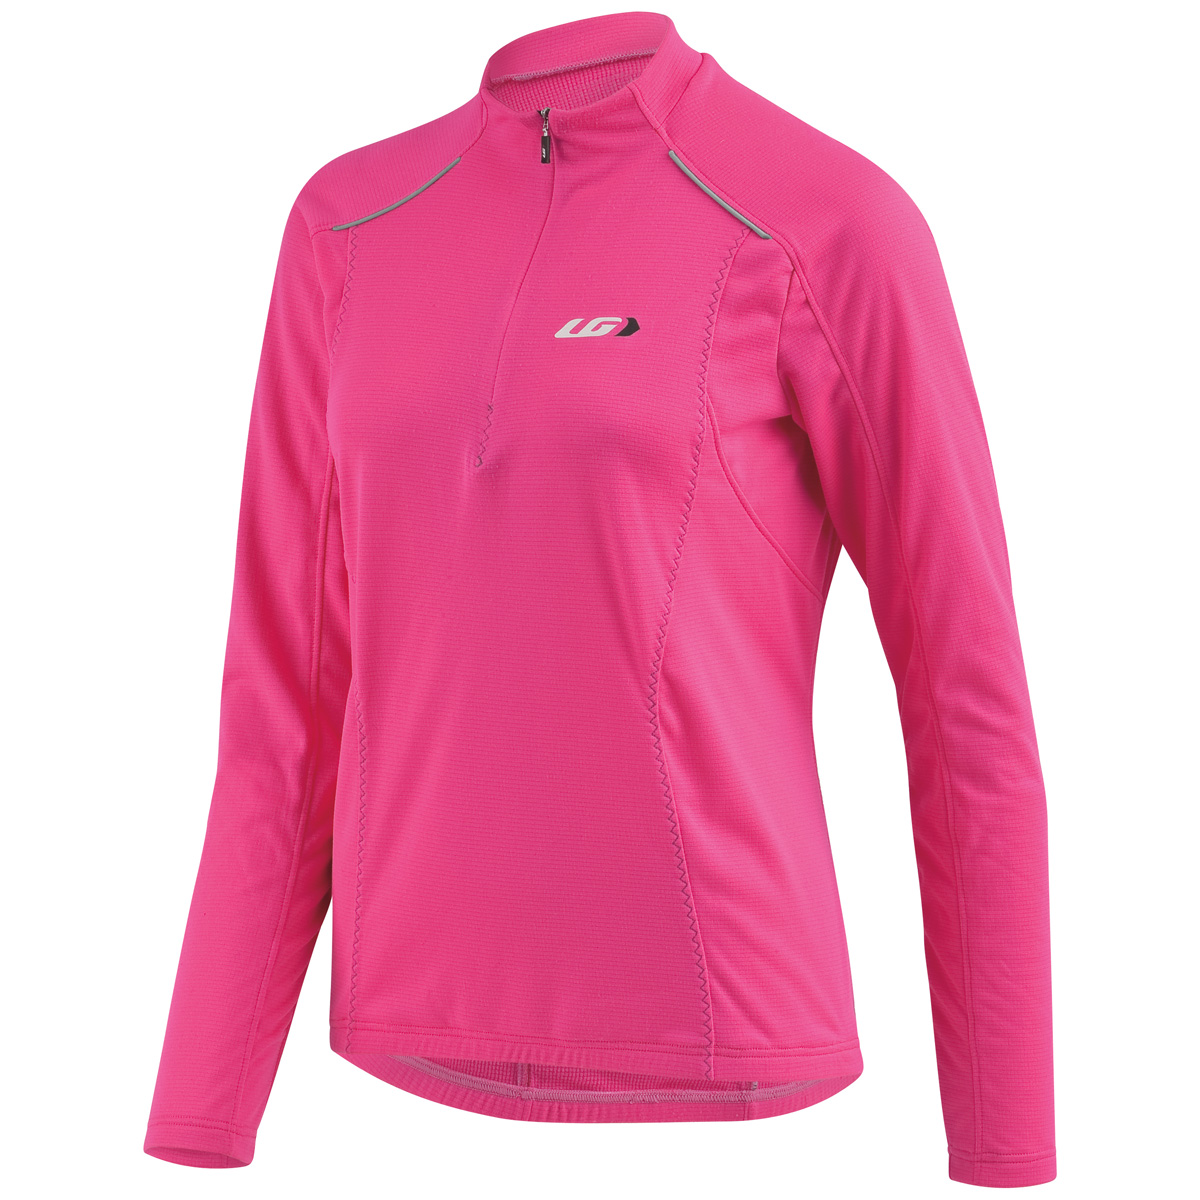 6b8754eeb Louis Garneau 2019 Women s Edge CT Long Sleeve Cycling Jersey - 1023446